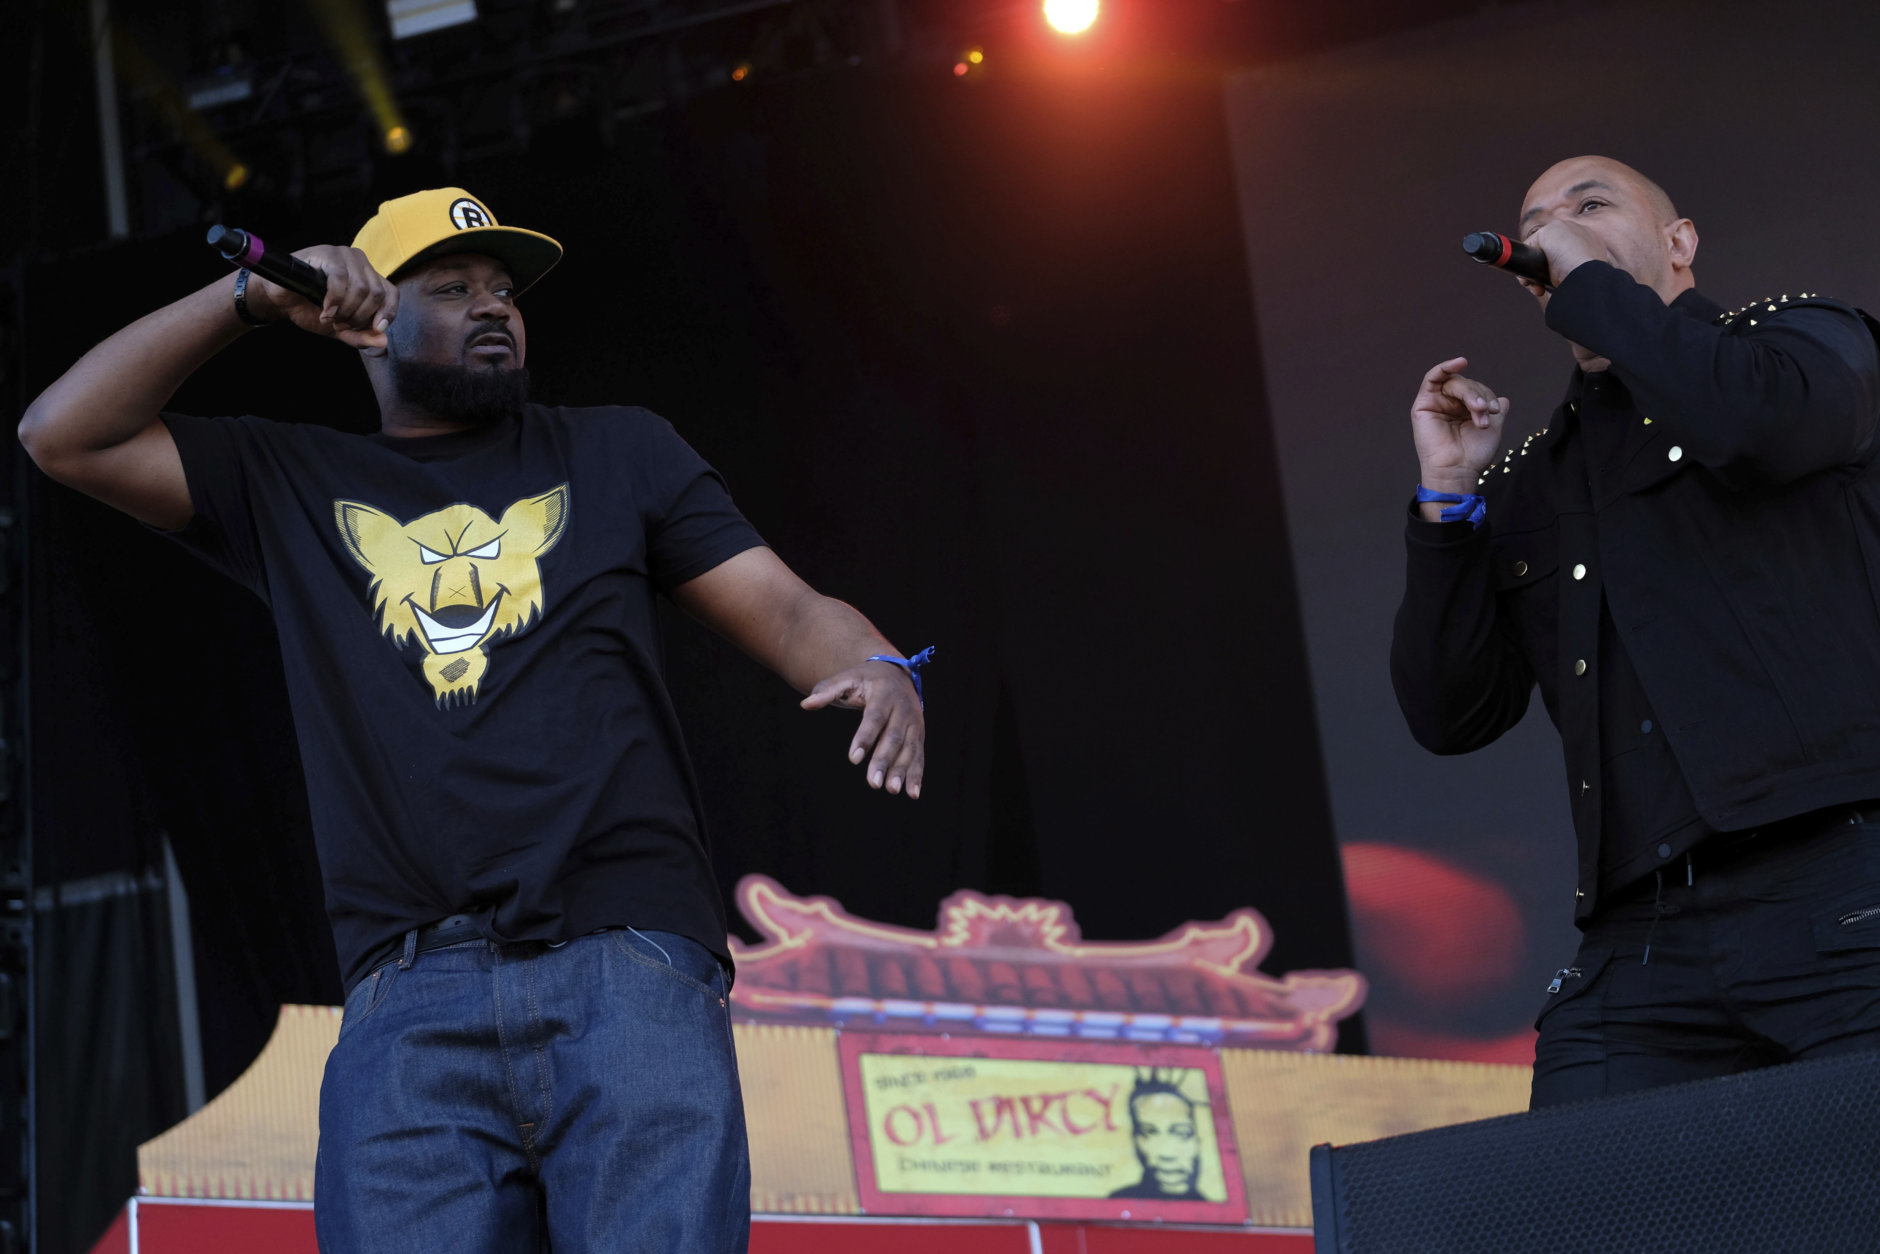 Ghostface Killah, left, and U-God from the hip hop group the Wu-Tang Clan perform on day two of the Governors Ball Music Festival on Saturday, June 3, 2017, in New York. (Photo by Charles Sykes/Invision/AP)